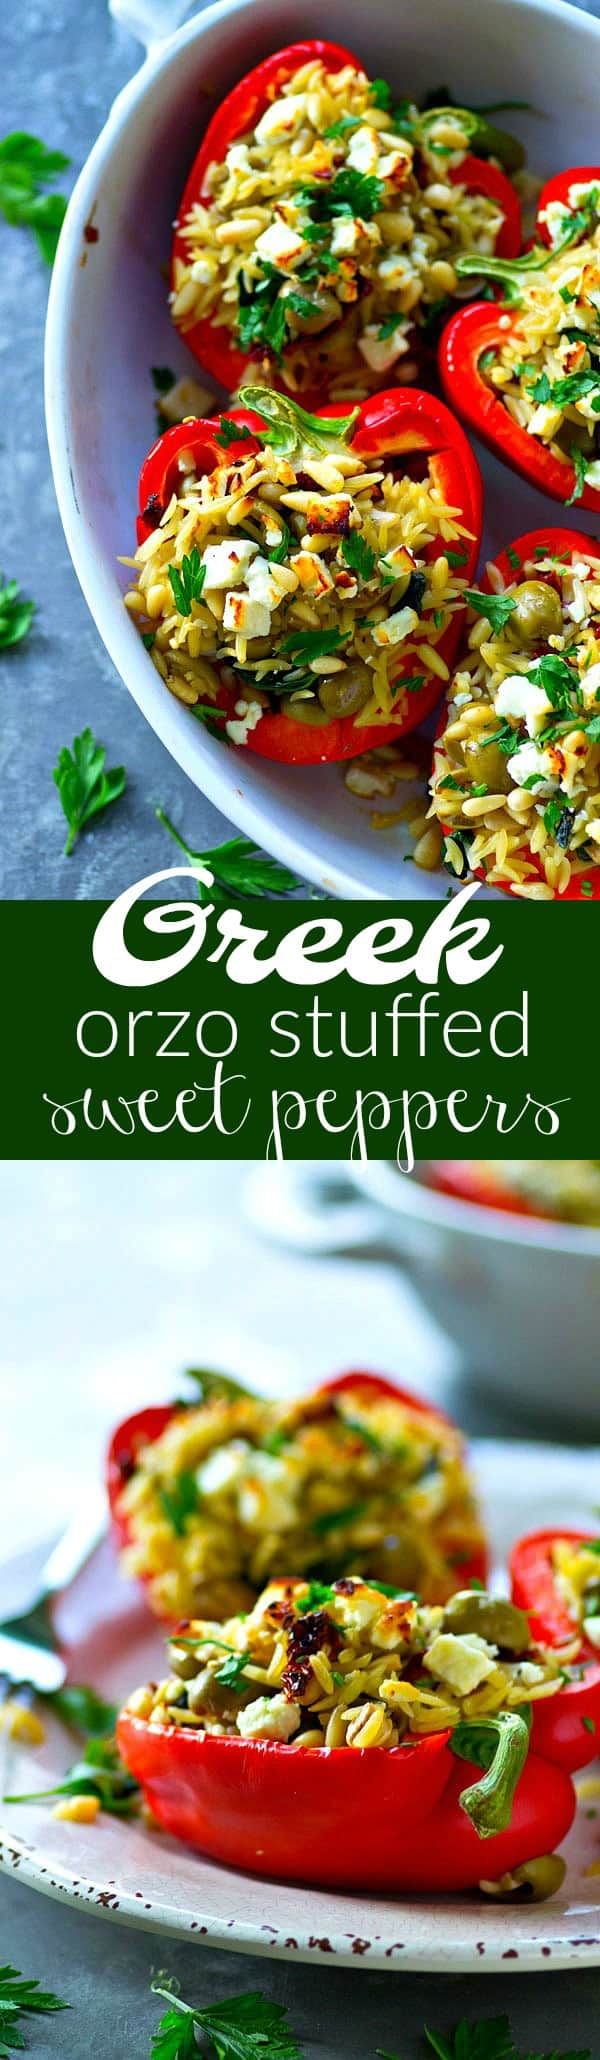 Stuffed with a flavor-packed orzo filling, these summery Greek orzo stuffed sweet peppers are a fun change from the usual stuffed peppers and SO easy to throw together!